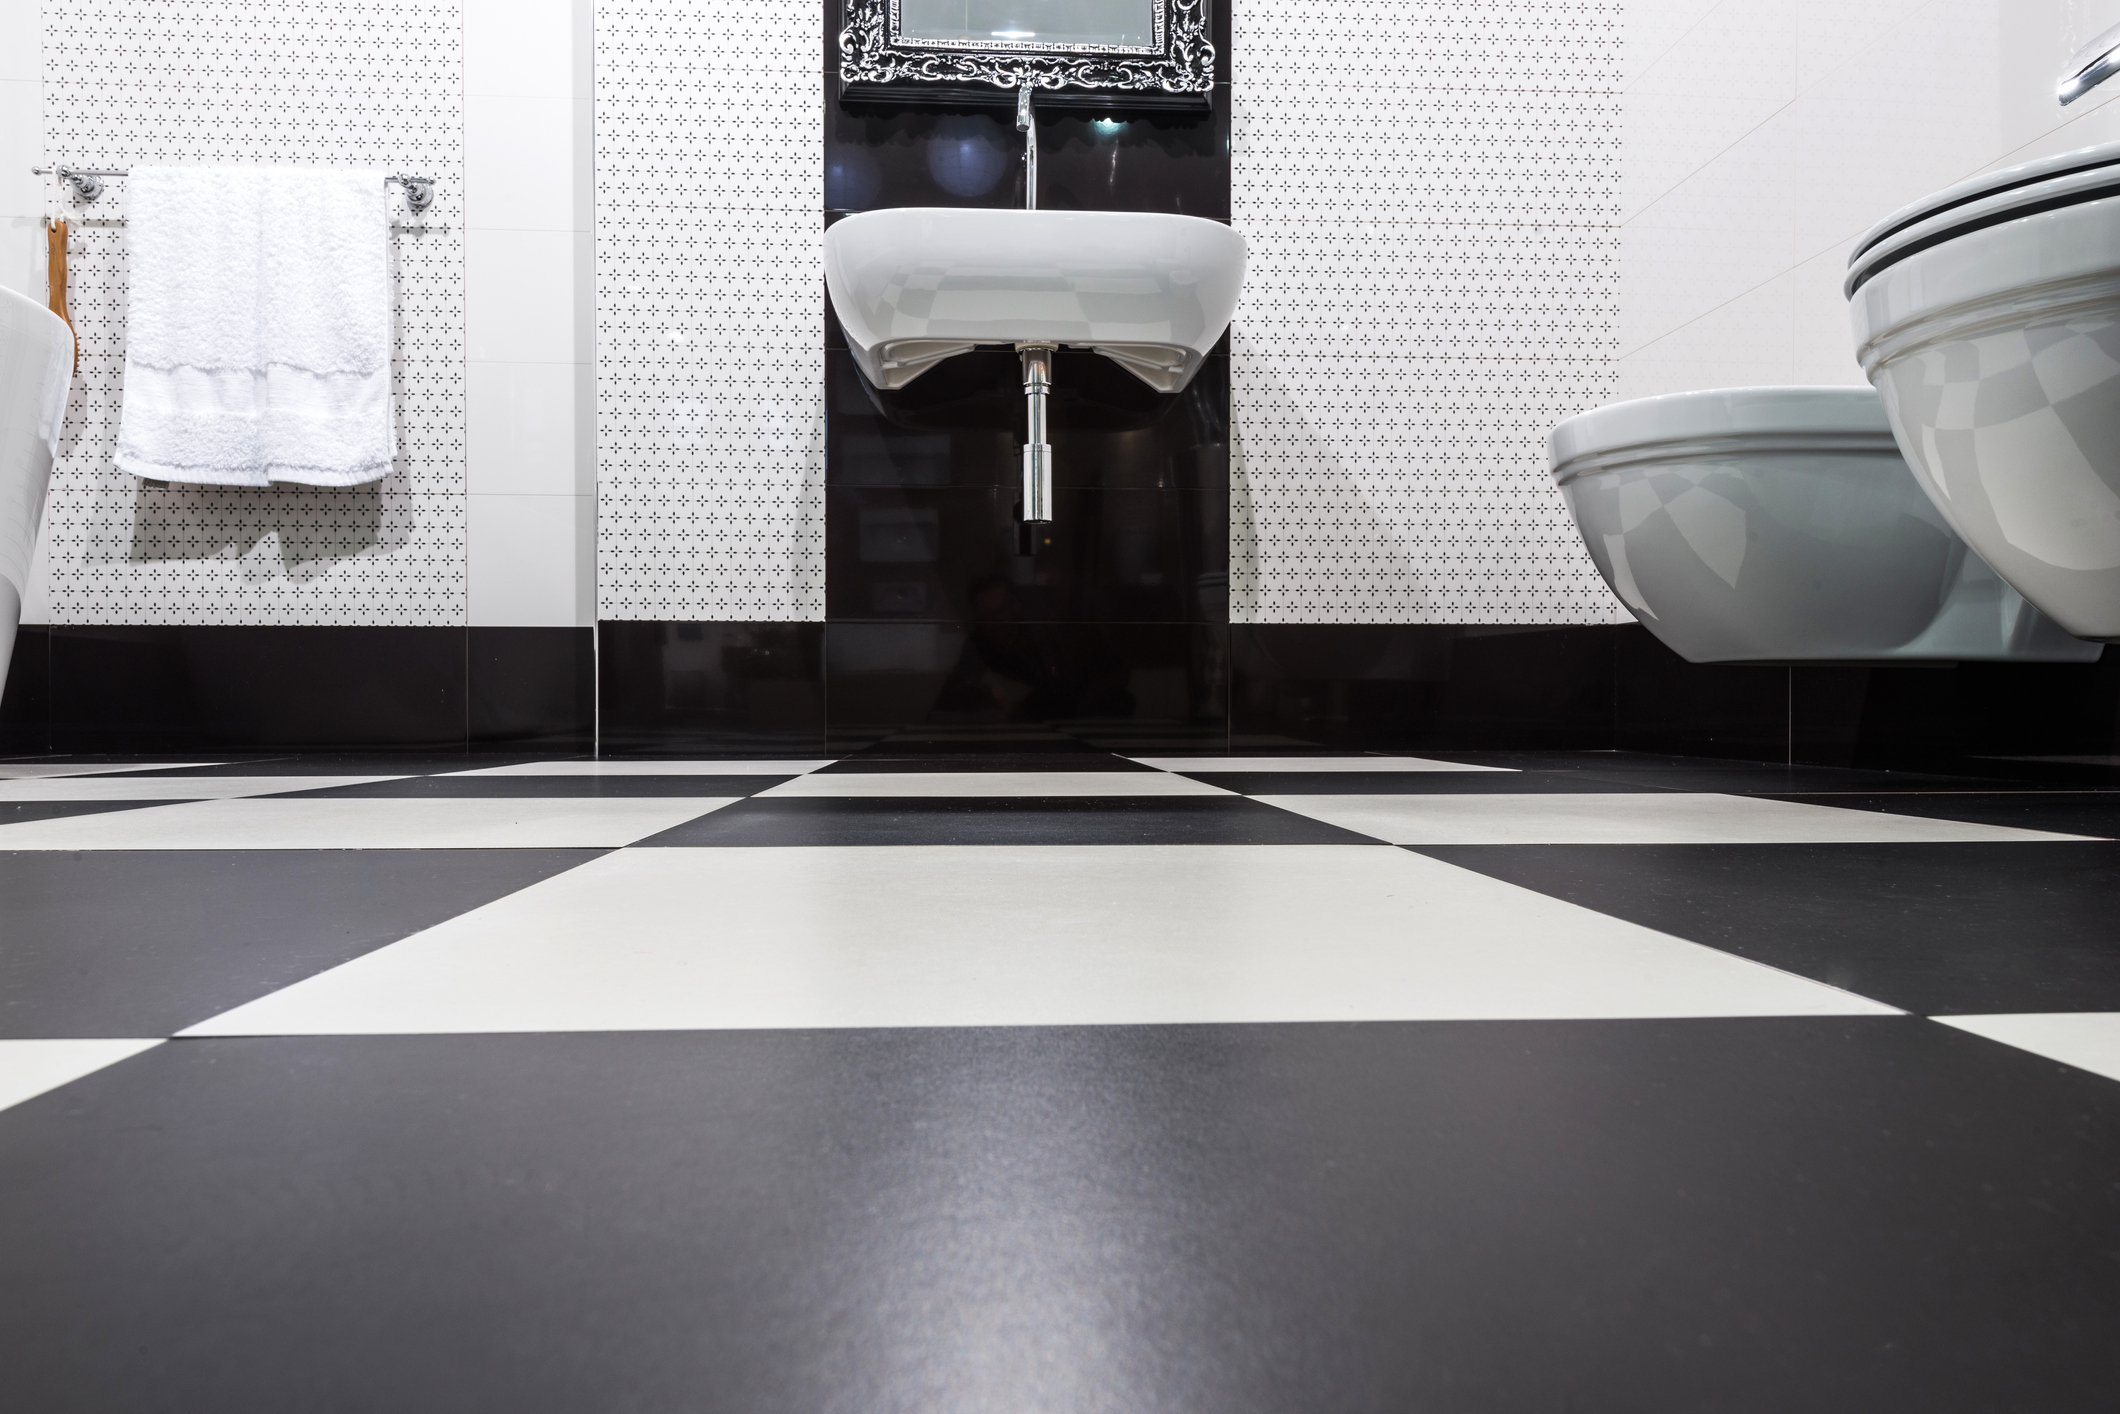 Bathroom with black and white floor tiles